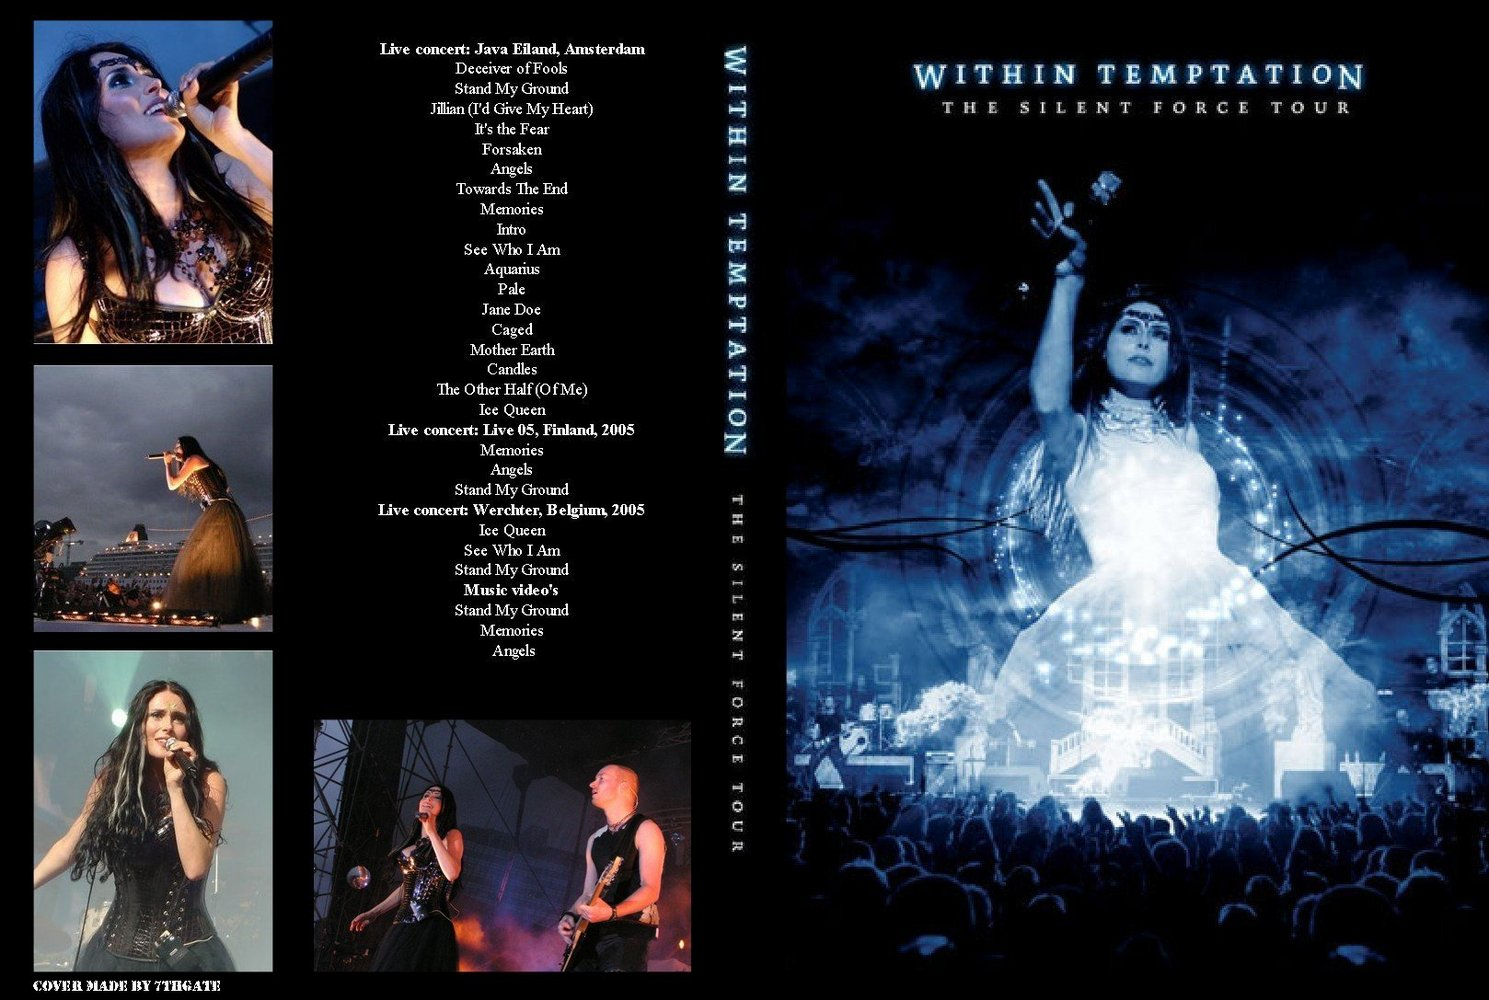 within_temptation-the_silent_force_tour.jpg